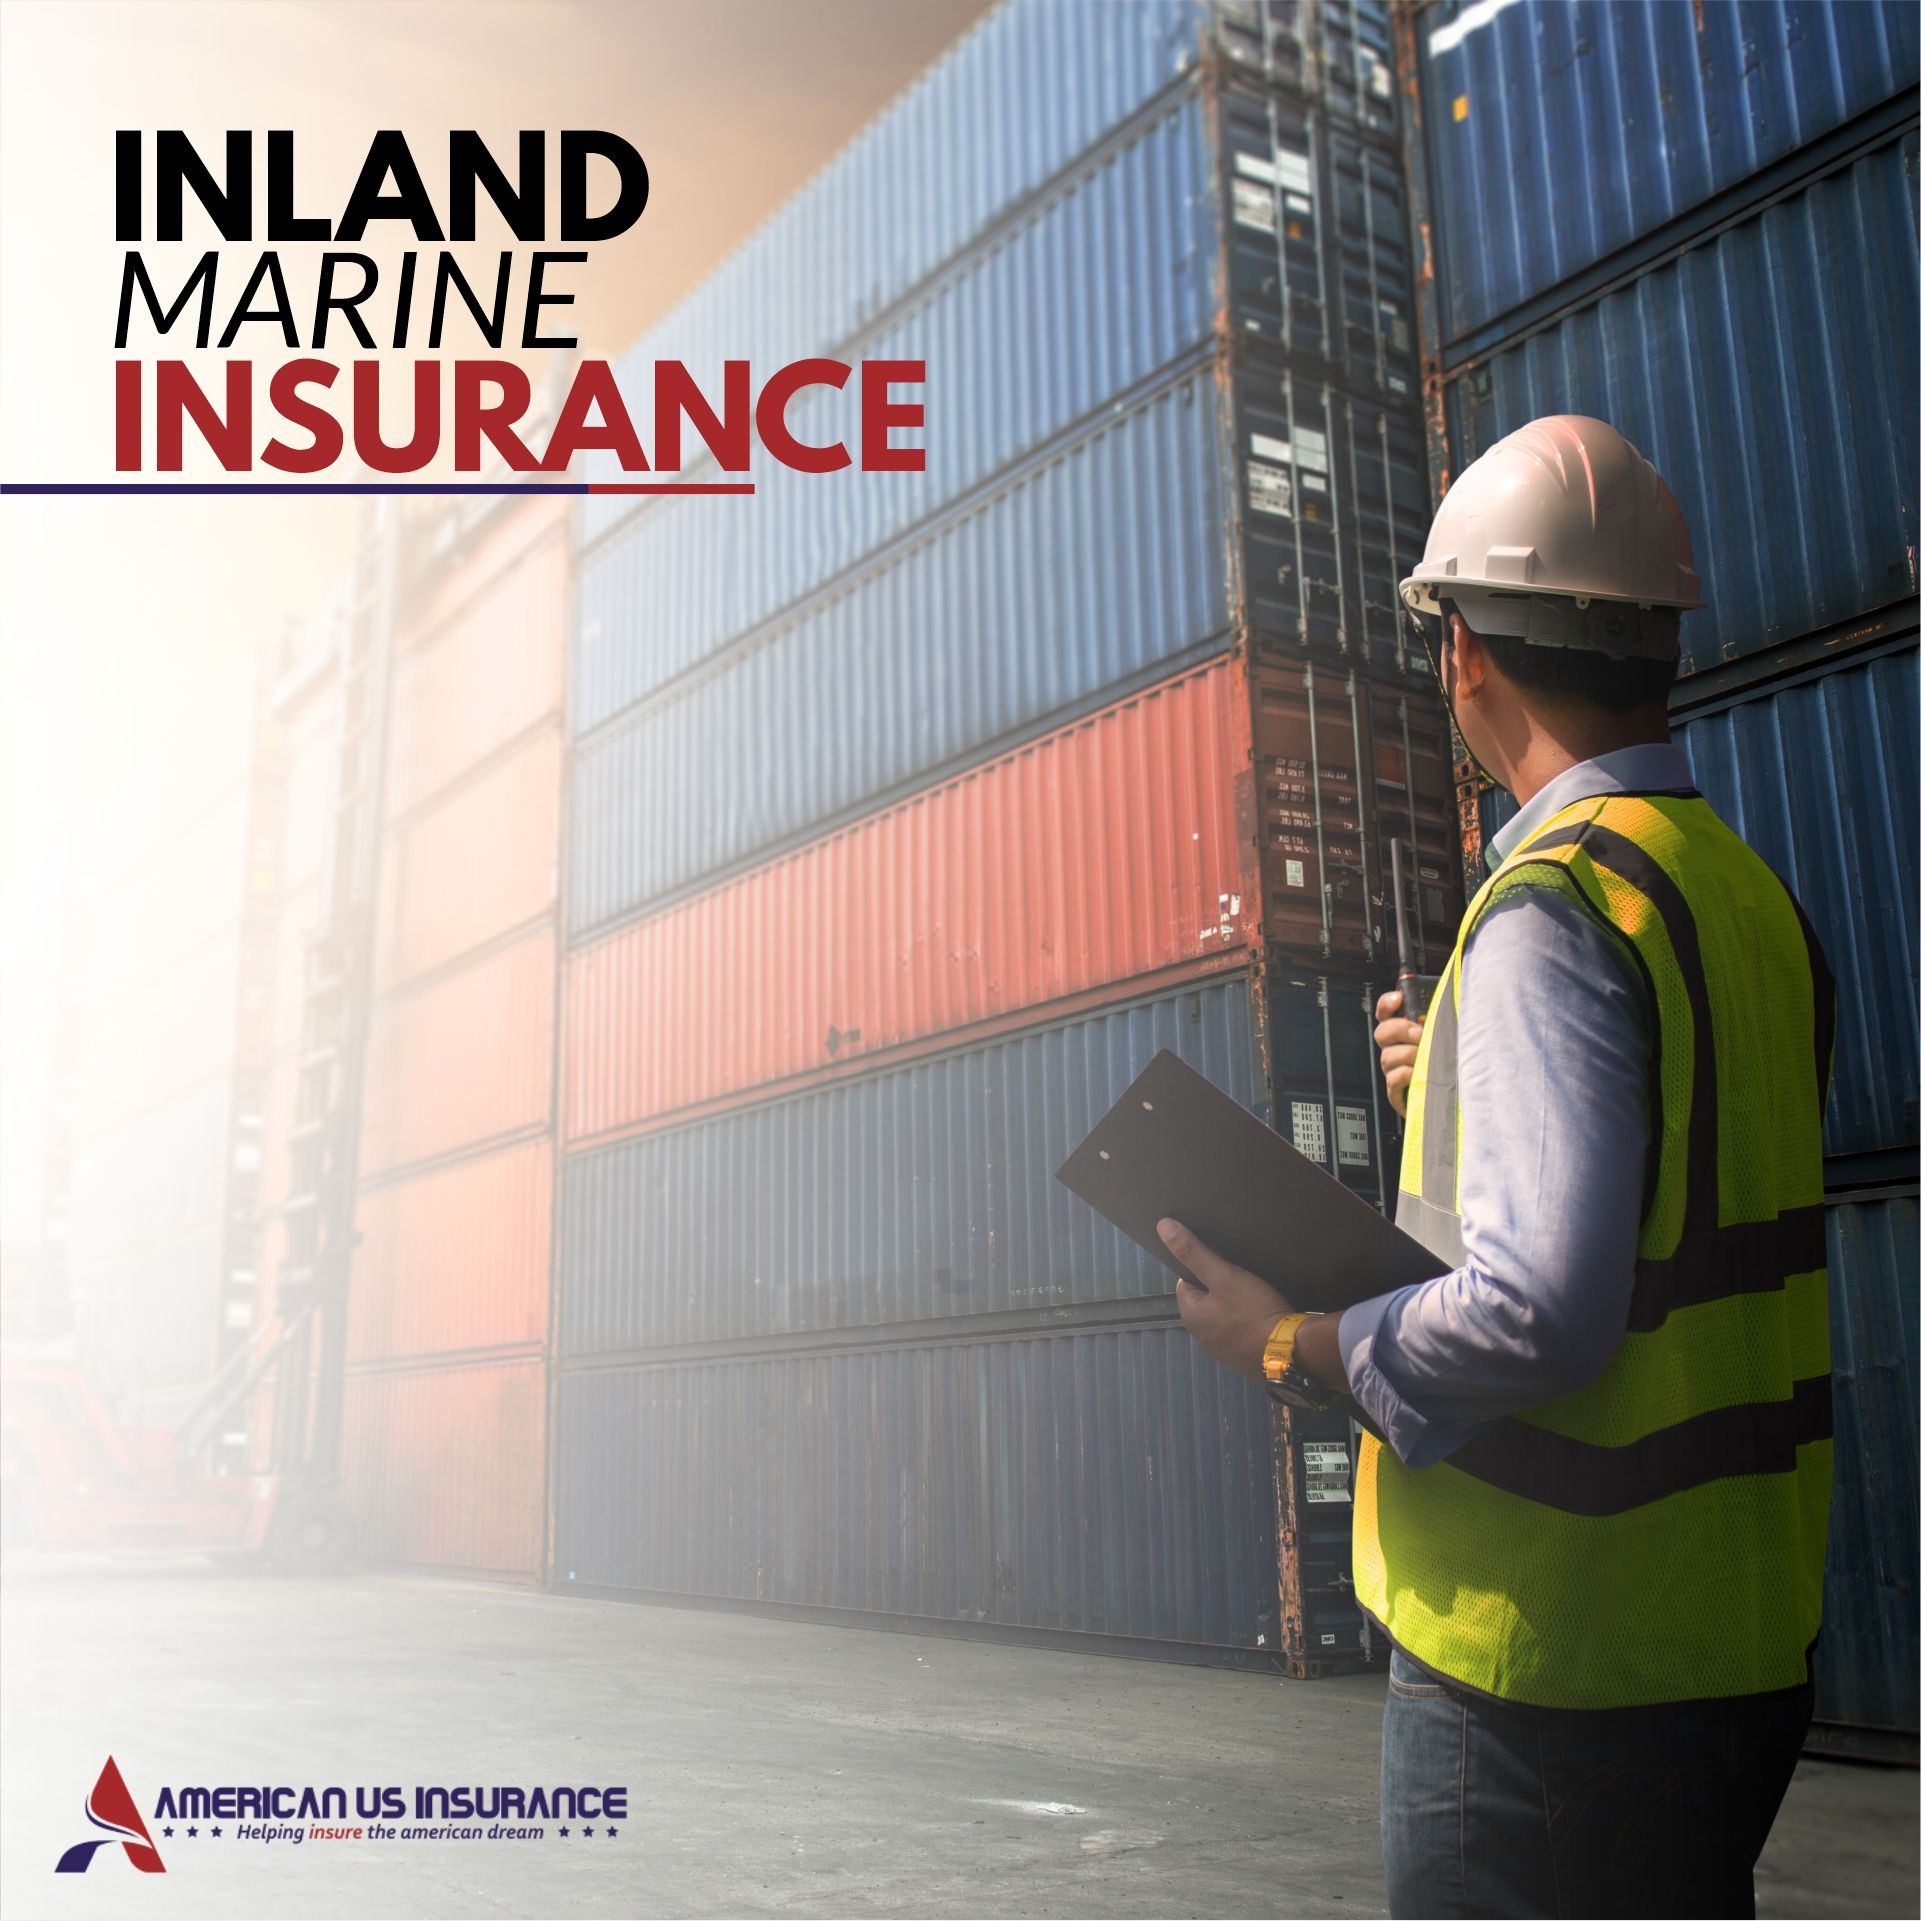 A Commercial Inland Marine Floater ensures your property